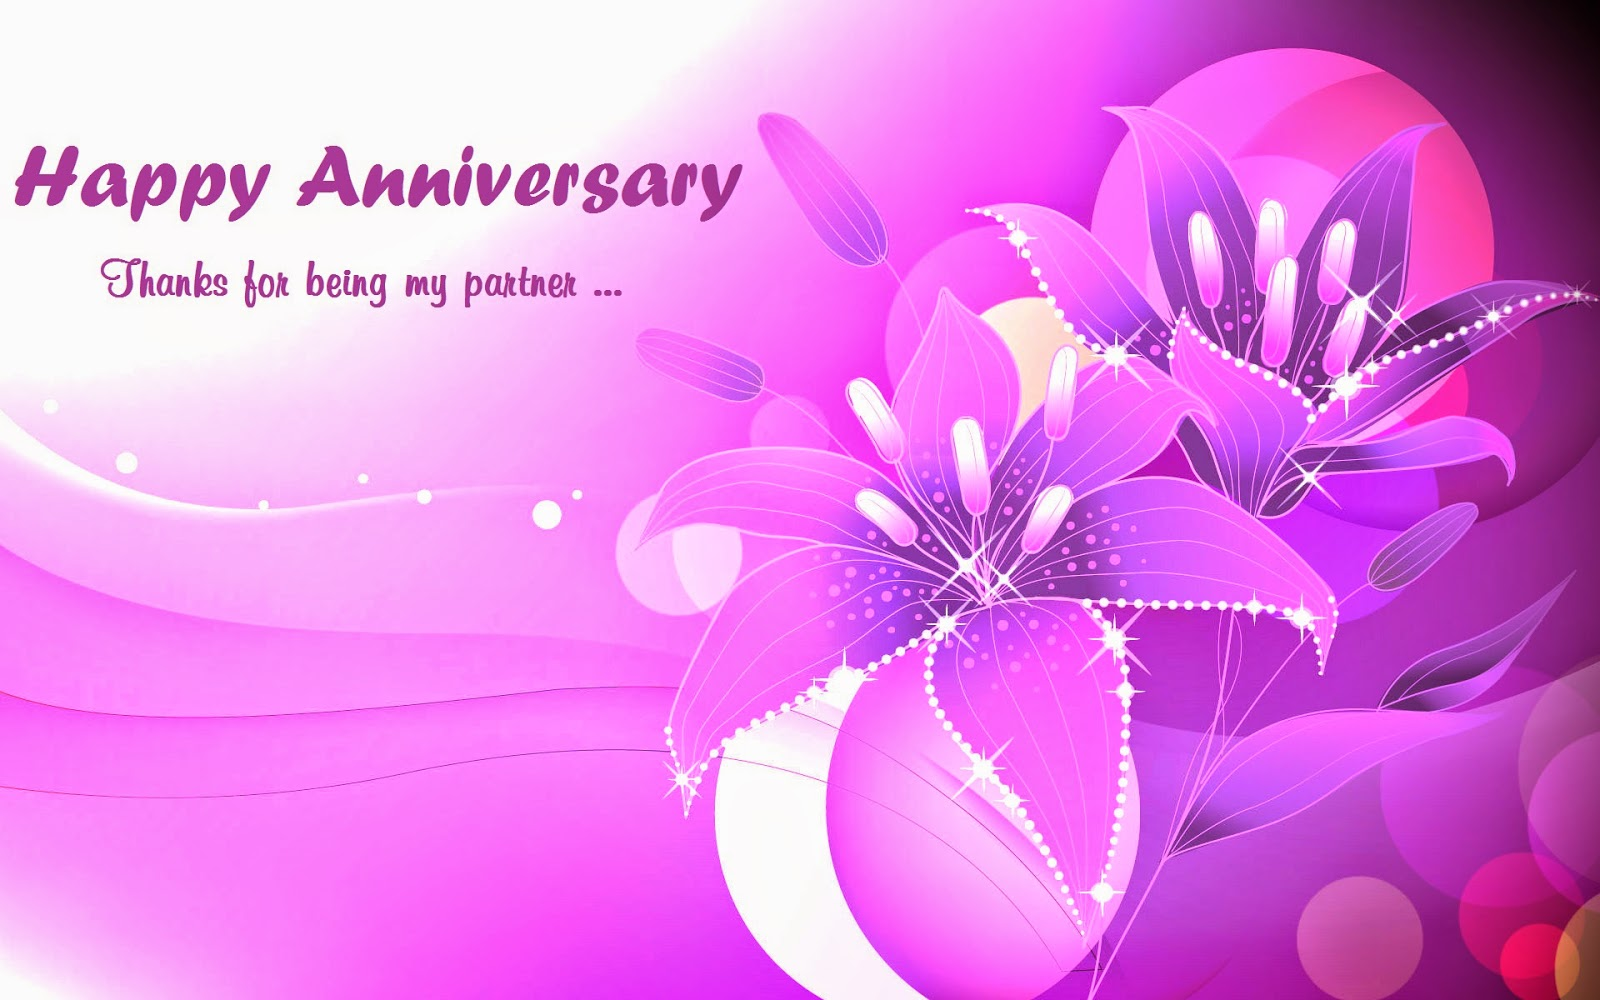 Amazing Anniversary HD Photo's, Greetings Cards